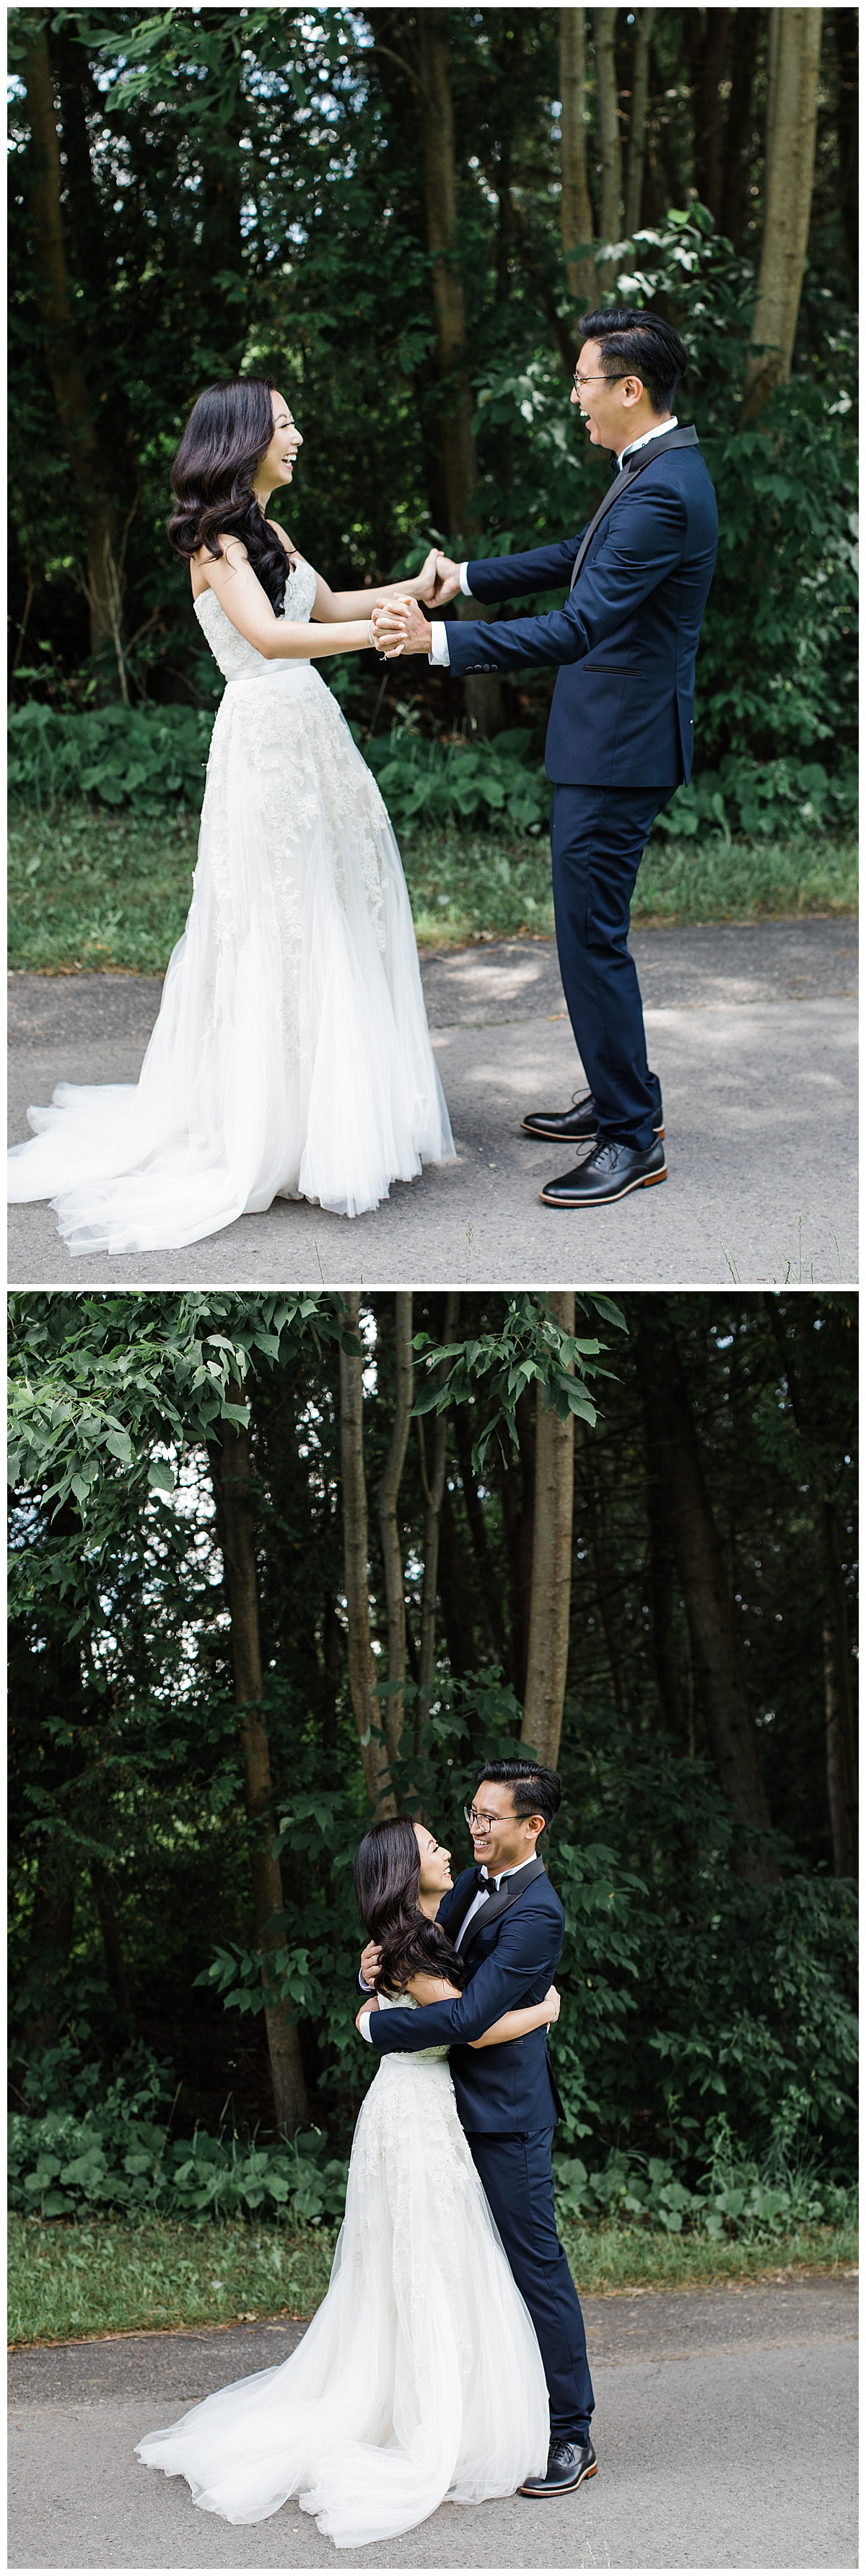 Bride and groom see each other in excitement and hug at first look| 3photography